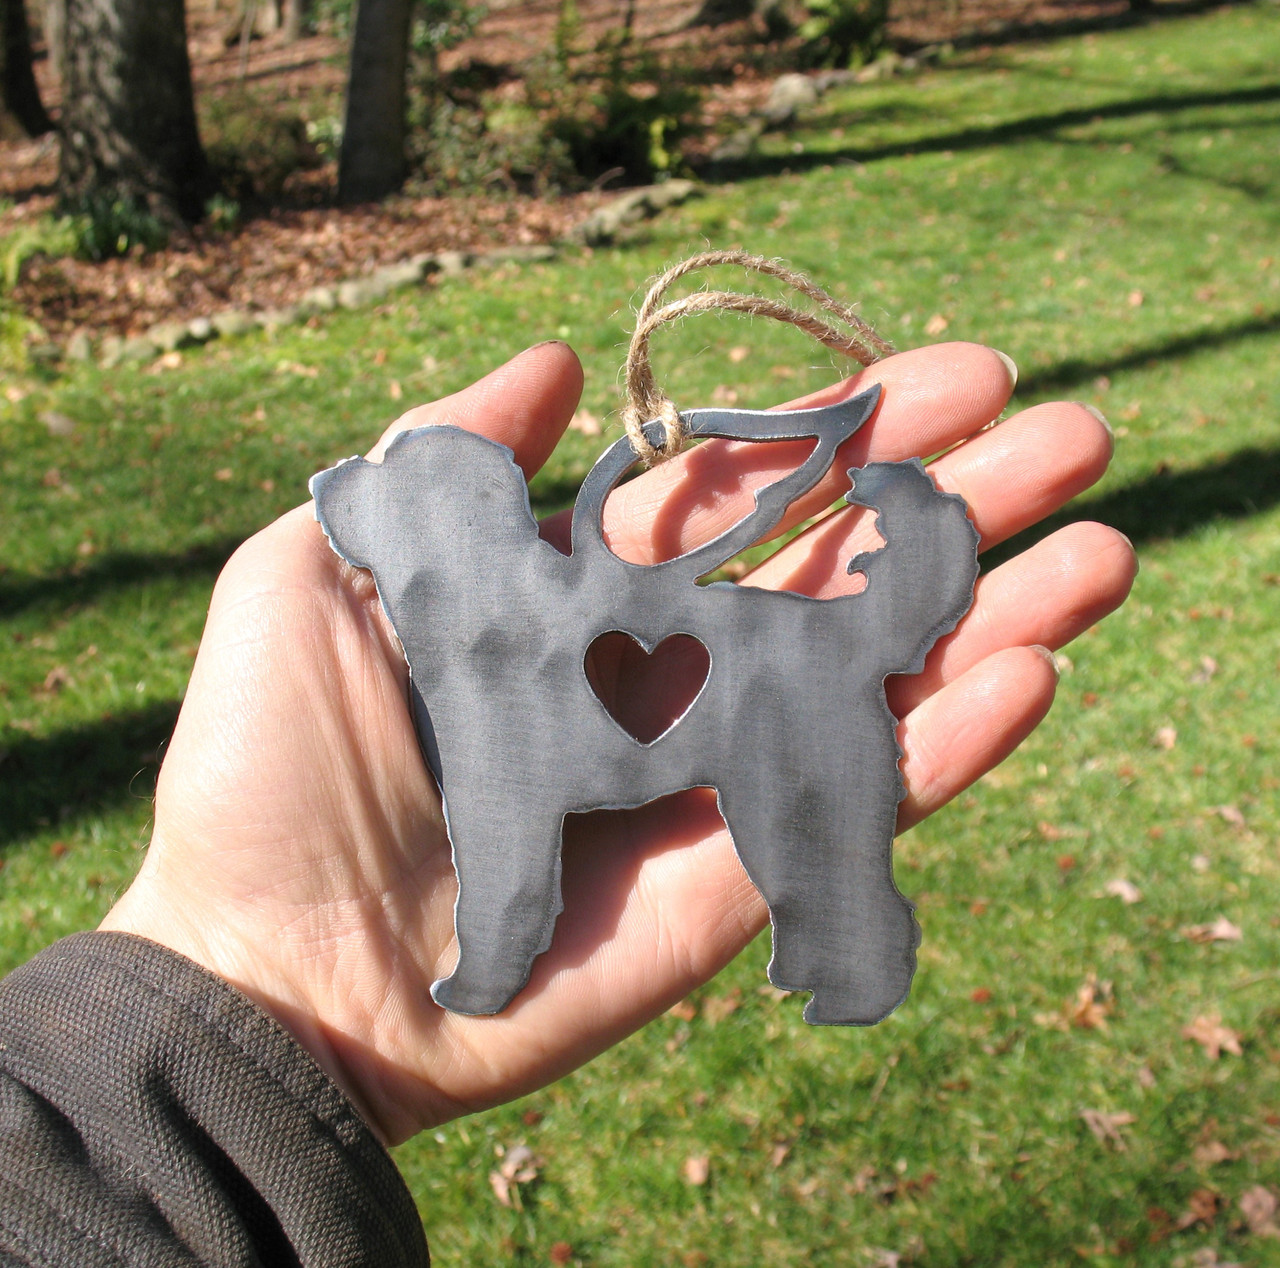 Labradoodle Goldendoodle Dog Ornament Pet Memorial W/ Angel Wings - Pet Loss Dog Sympathy Remembrance Gift - Metal Dog Christmas Ornament